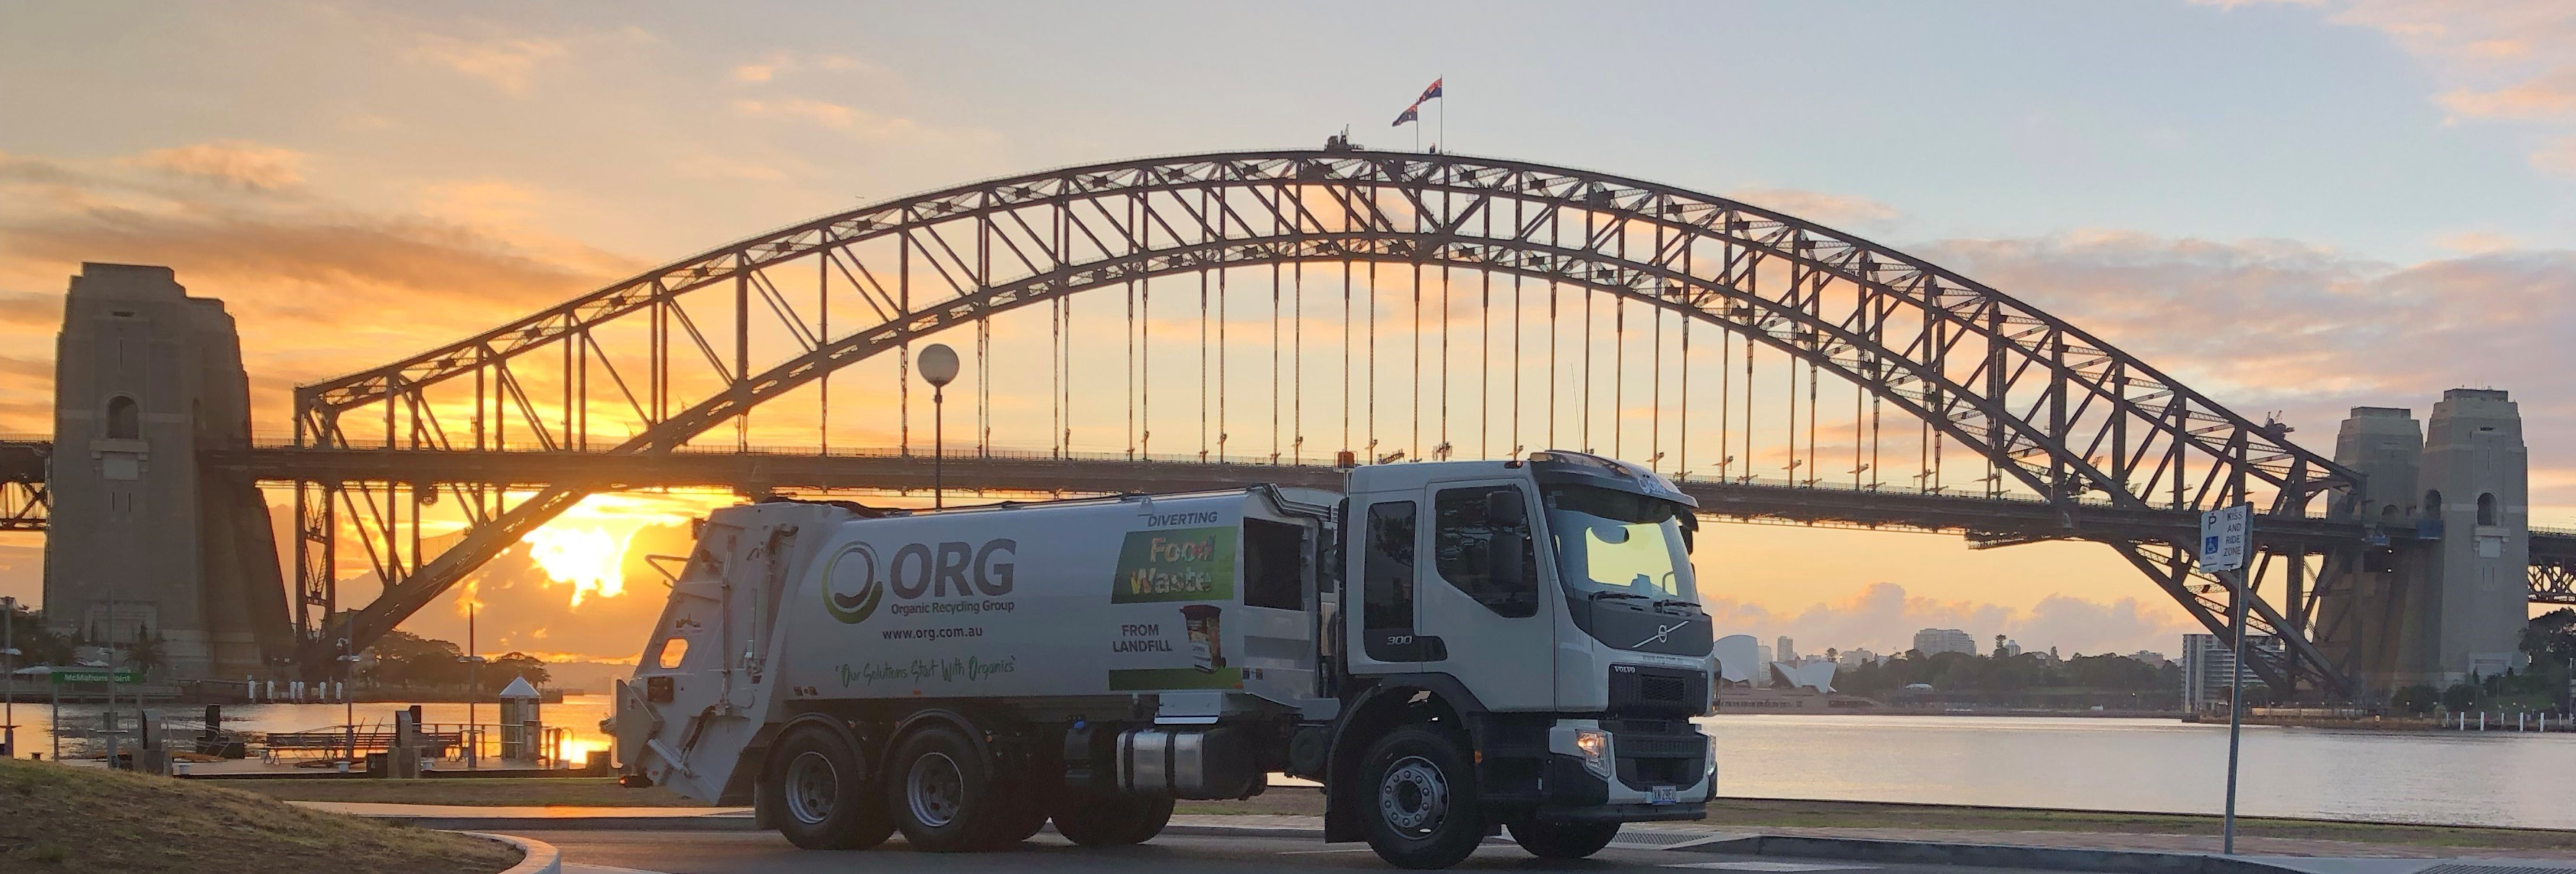 ORG truck in front of the Sydney Harbour Bridge